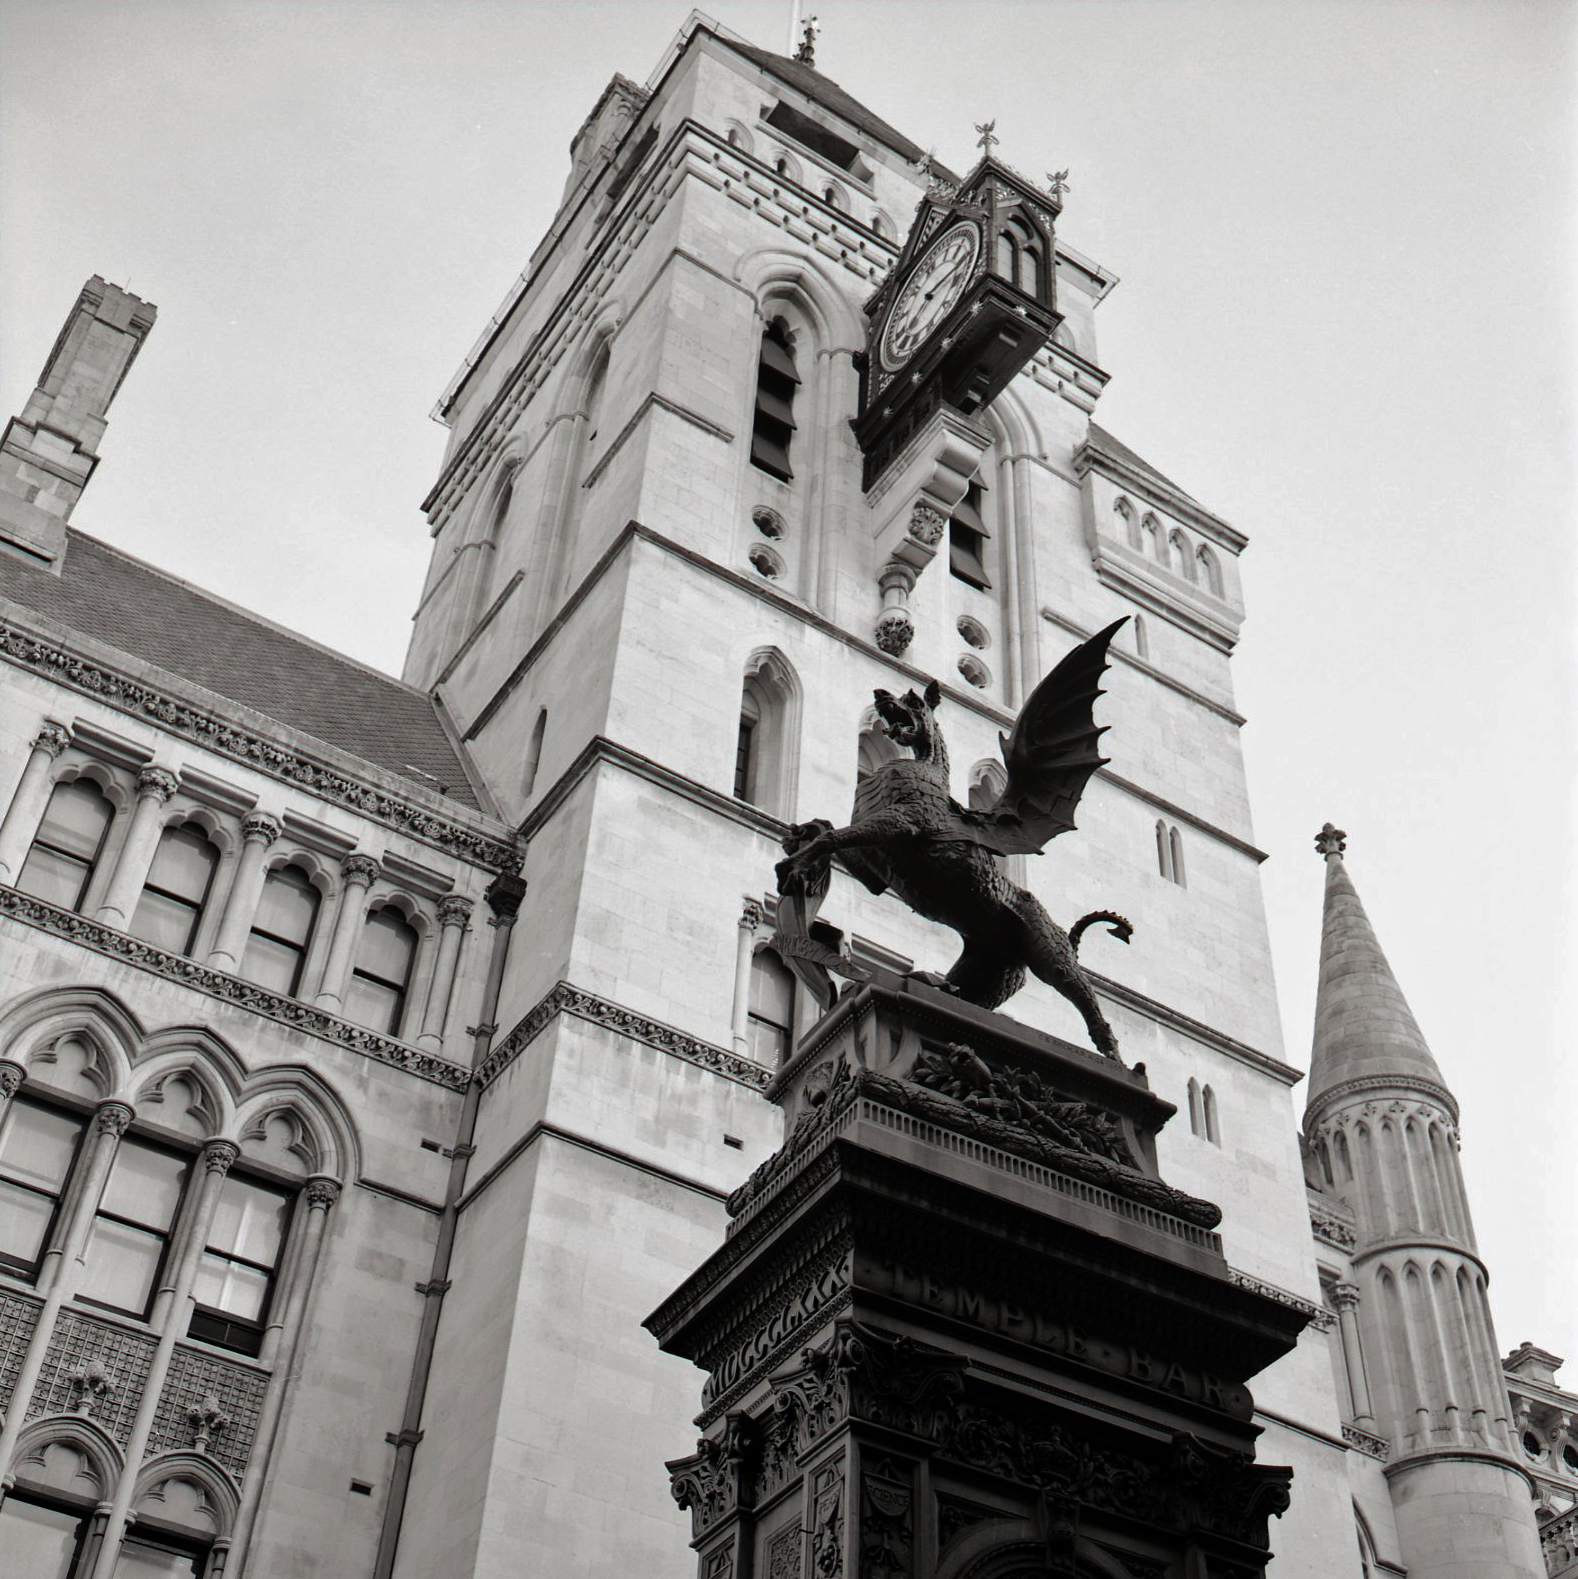 Law Courts, London